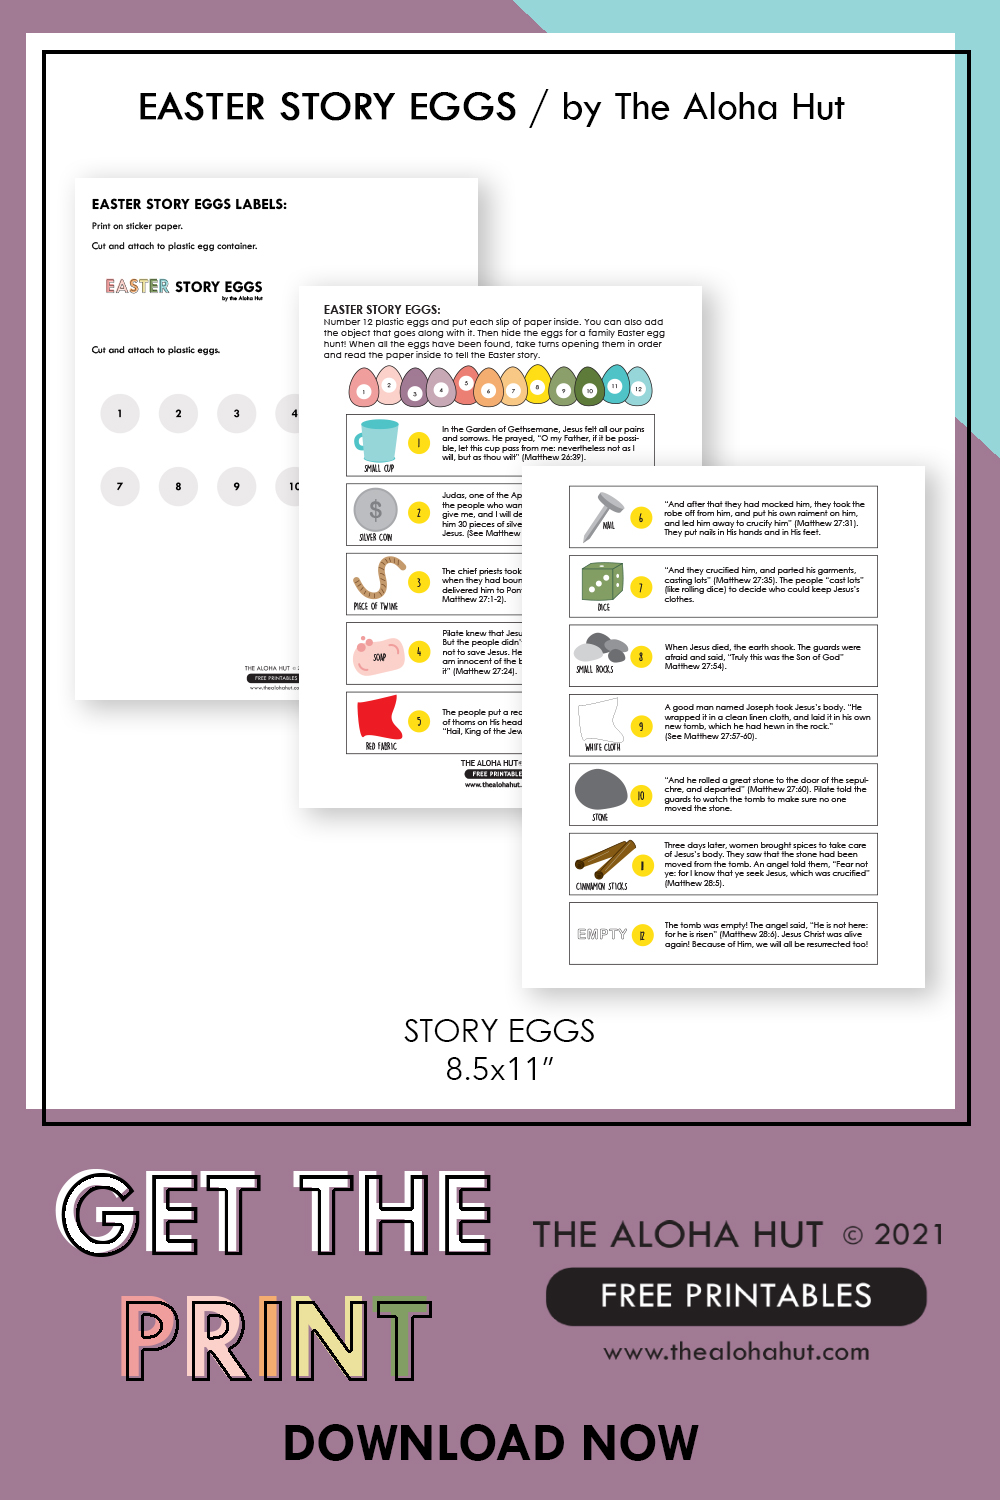 Free Printable Easter Story Eggs by the Aloha Hut